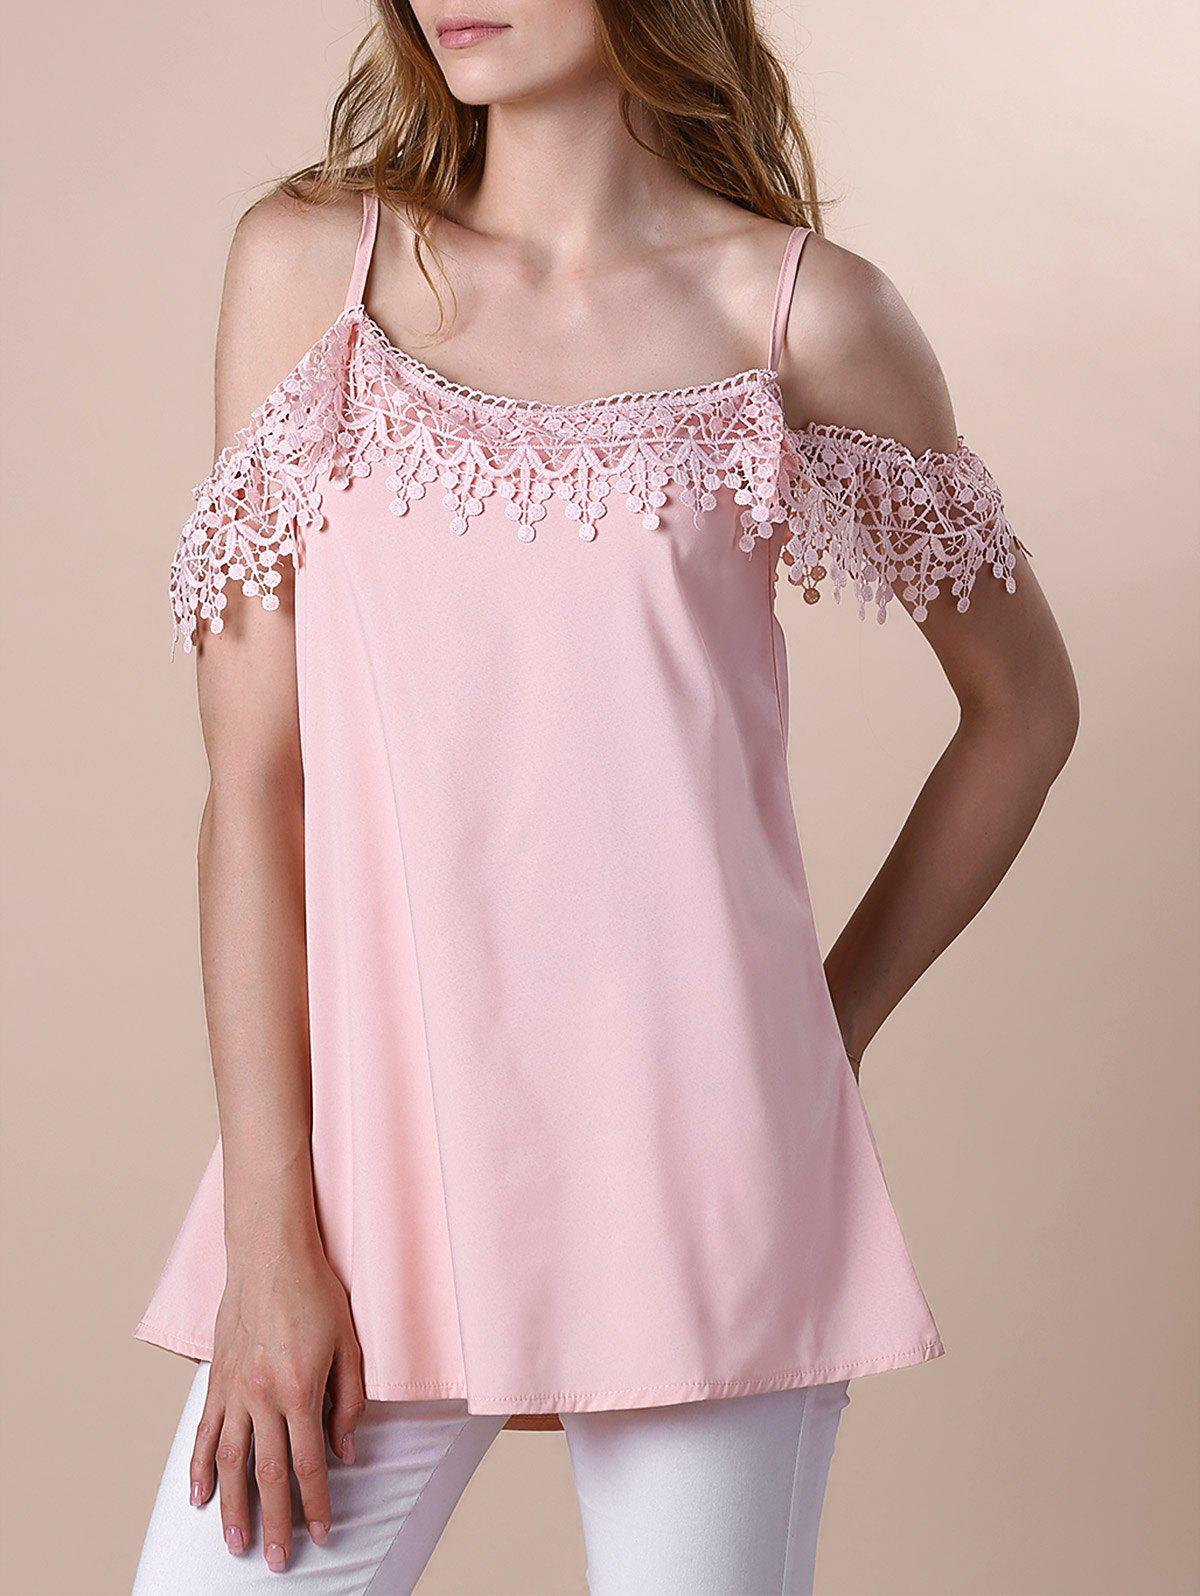 Sweet Lace Spliced Spaghetti Strap Womens DressWomen<br><br><br>Size: L<br>Color: PINK